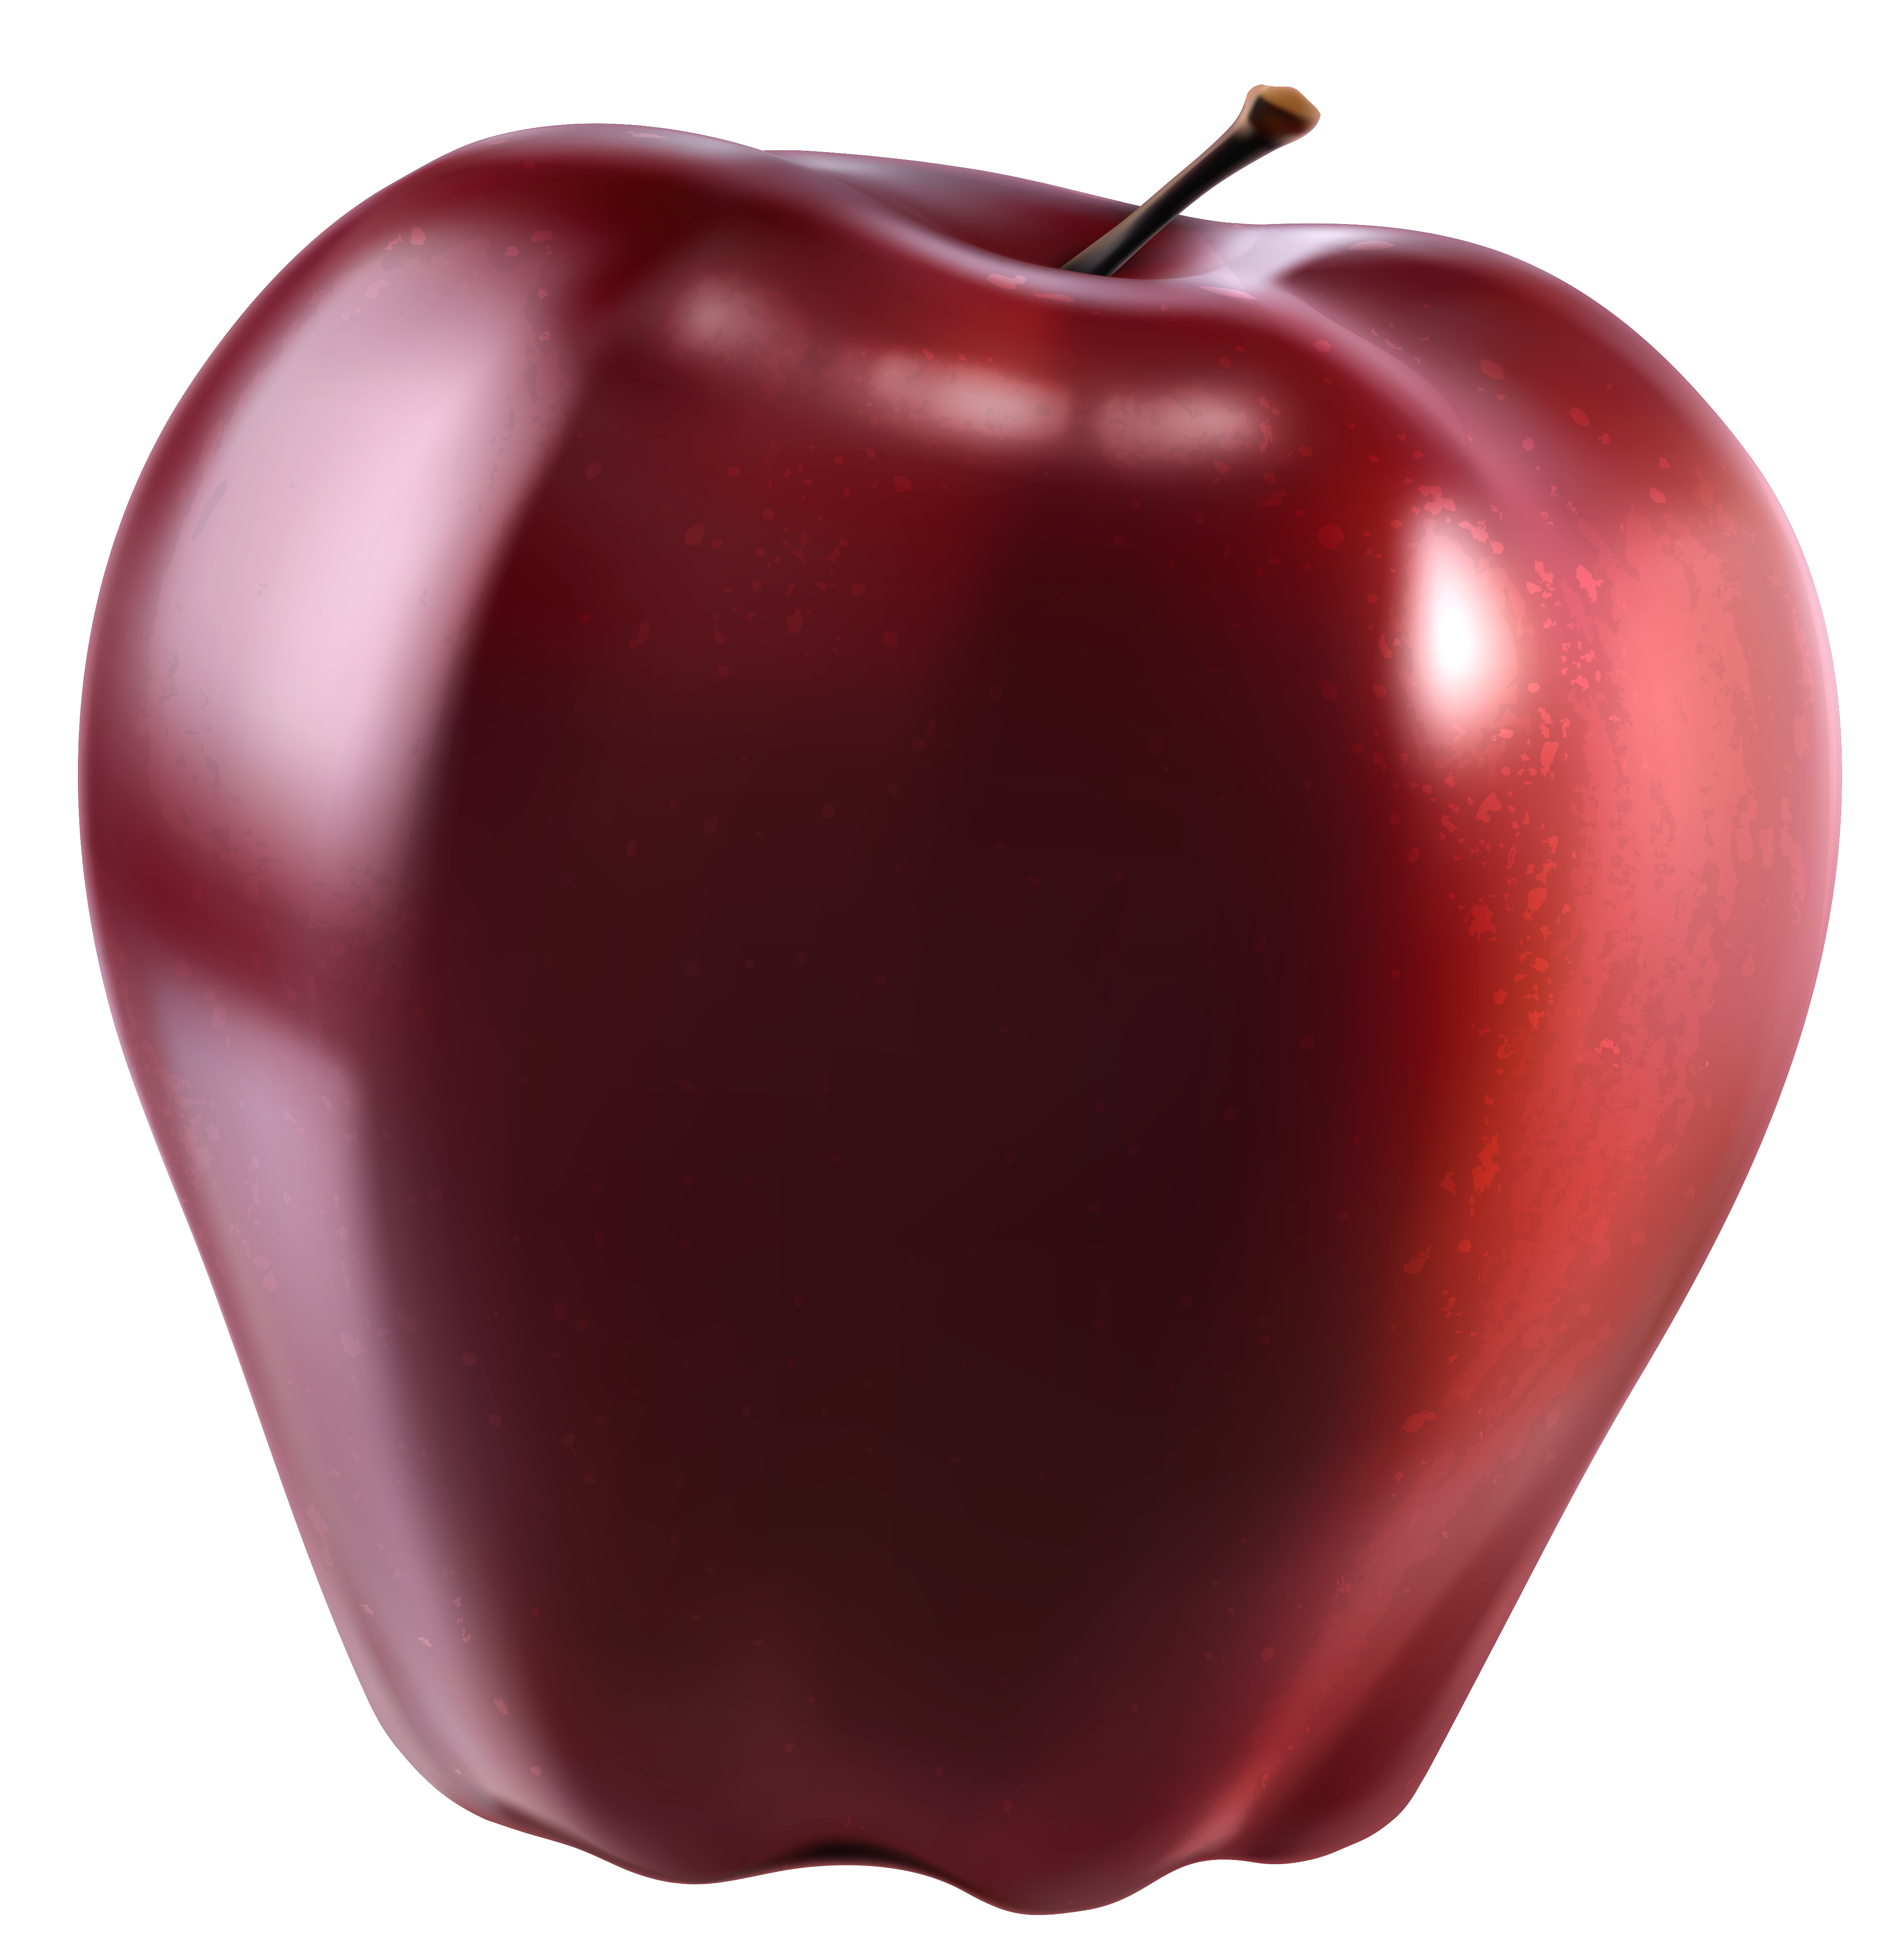 Free fall apple clipart clip art download Red Apple PNG Clipart Picture | Gallery Yopriceville - High-Quality ... clip art download